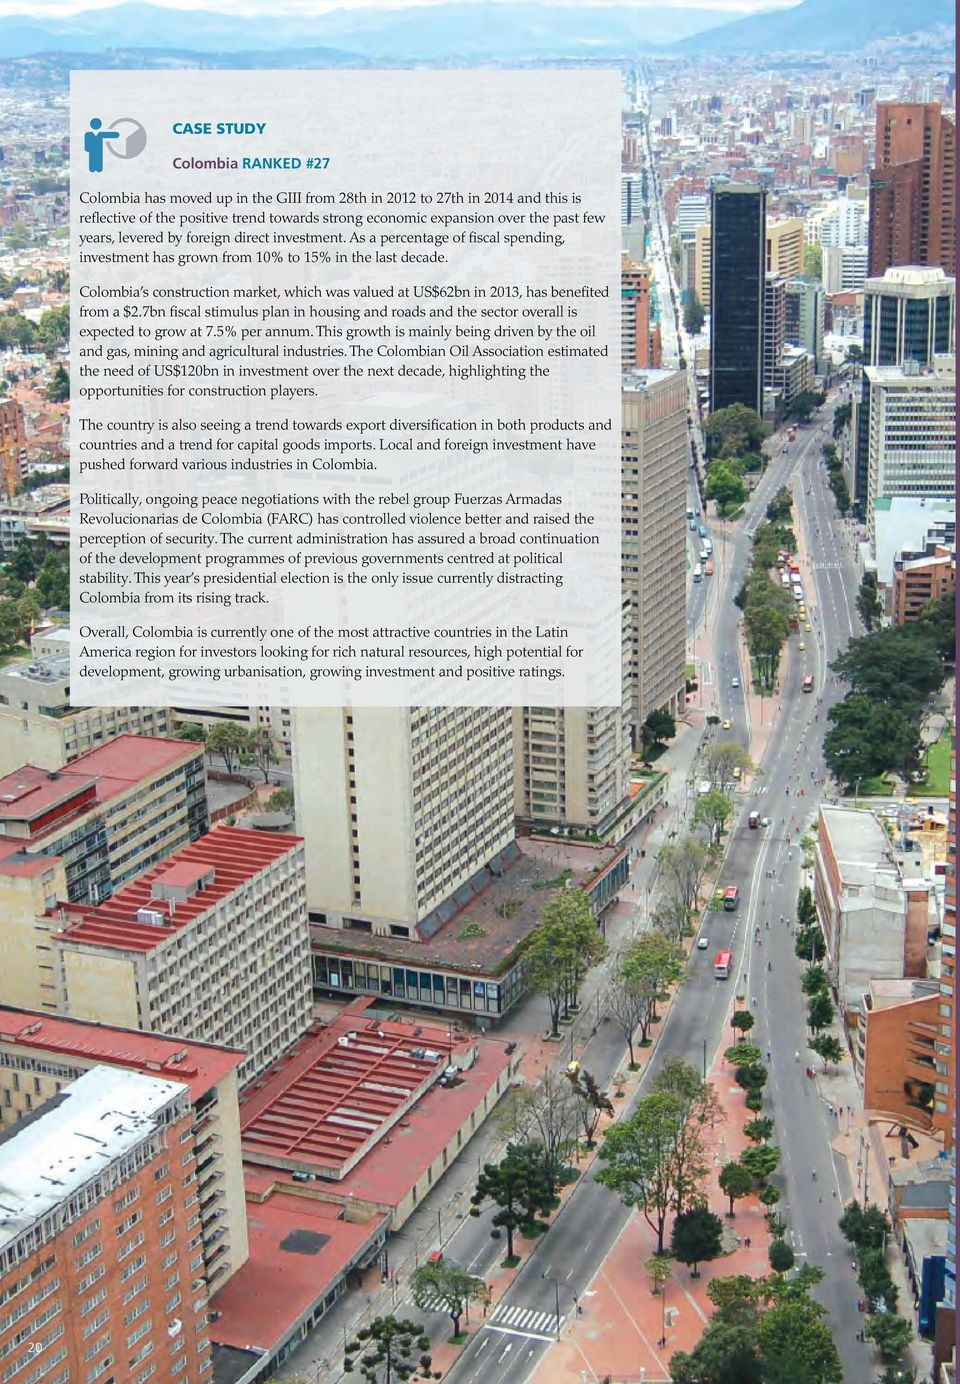 Colombia s construction market, which was valued at US$62bn in 2013, has benefited from a $2.7bn fiscal stimulus plan in housing and roads and the sector overall is expected to grow at 7.5% per annum.